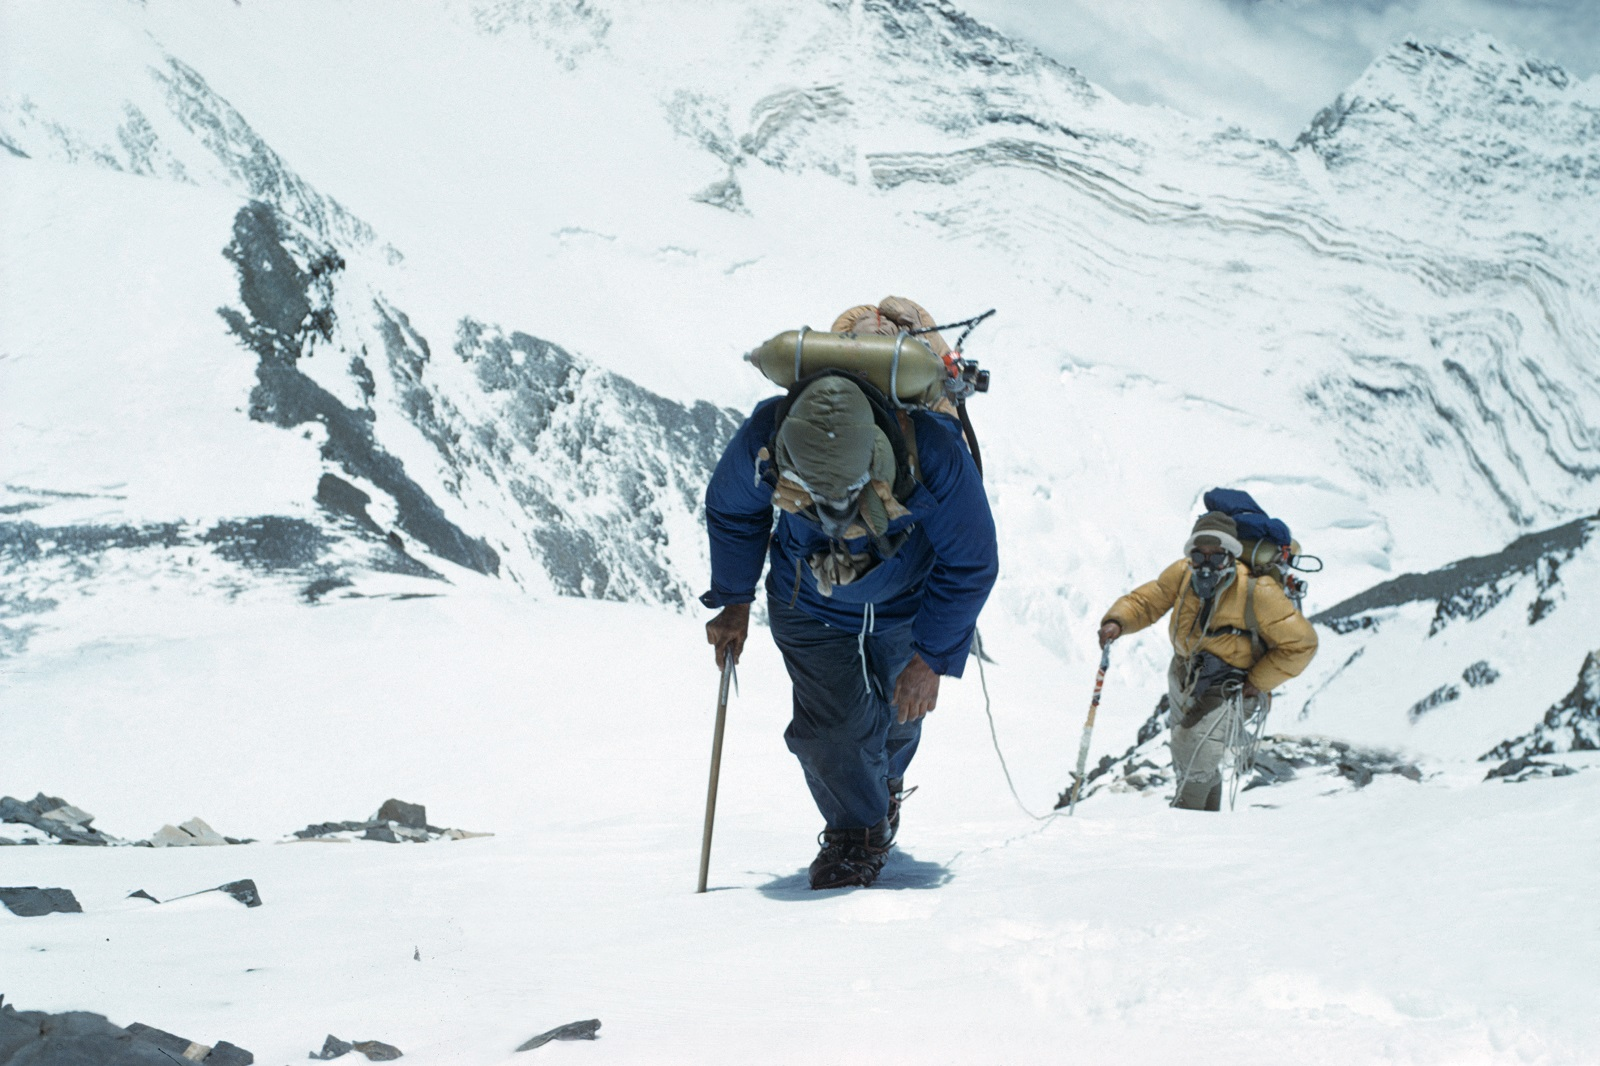 Sir Edmund Hillary and Tenzing Norgay climbing Mount Everest in 1953. Photo - Rolex